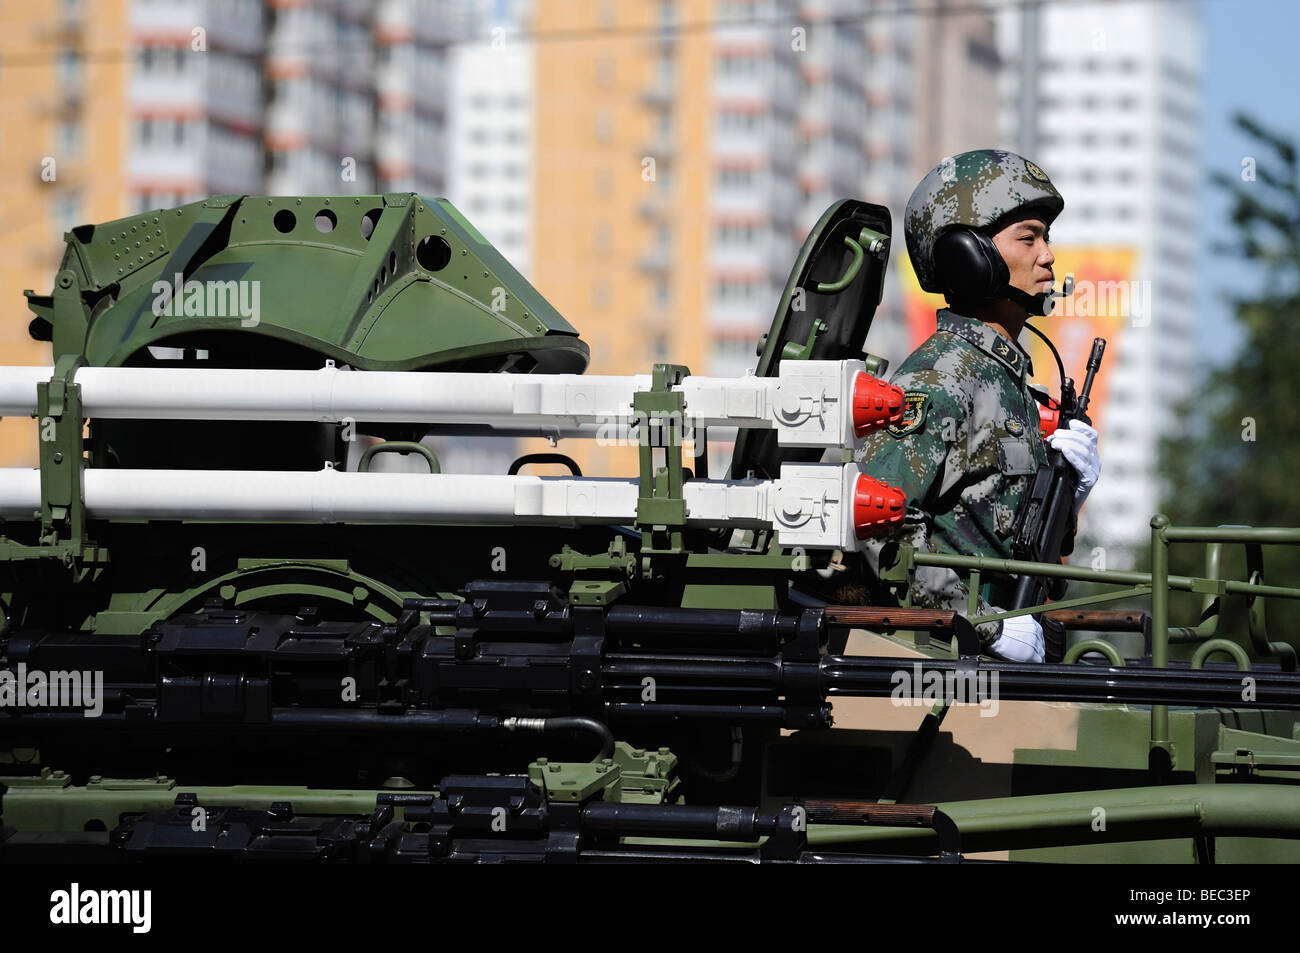 Military parade marking Chinas 60th anniversary of the Peoples Republic of China. 01-Oct-2009 - Stock Image